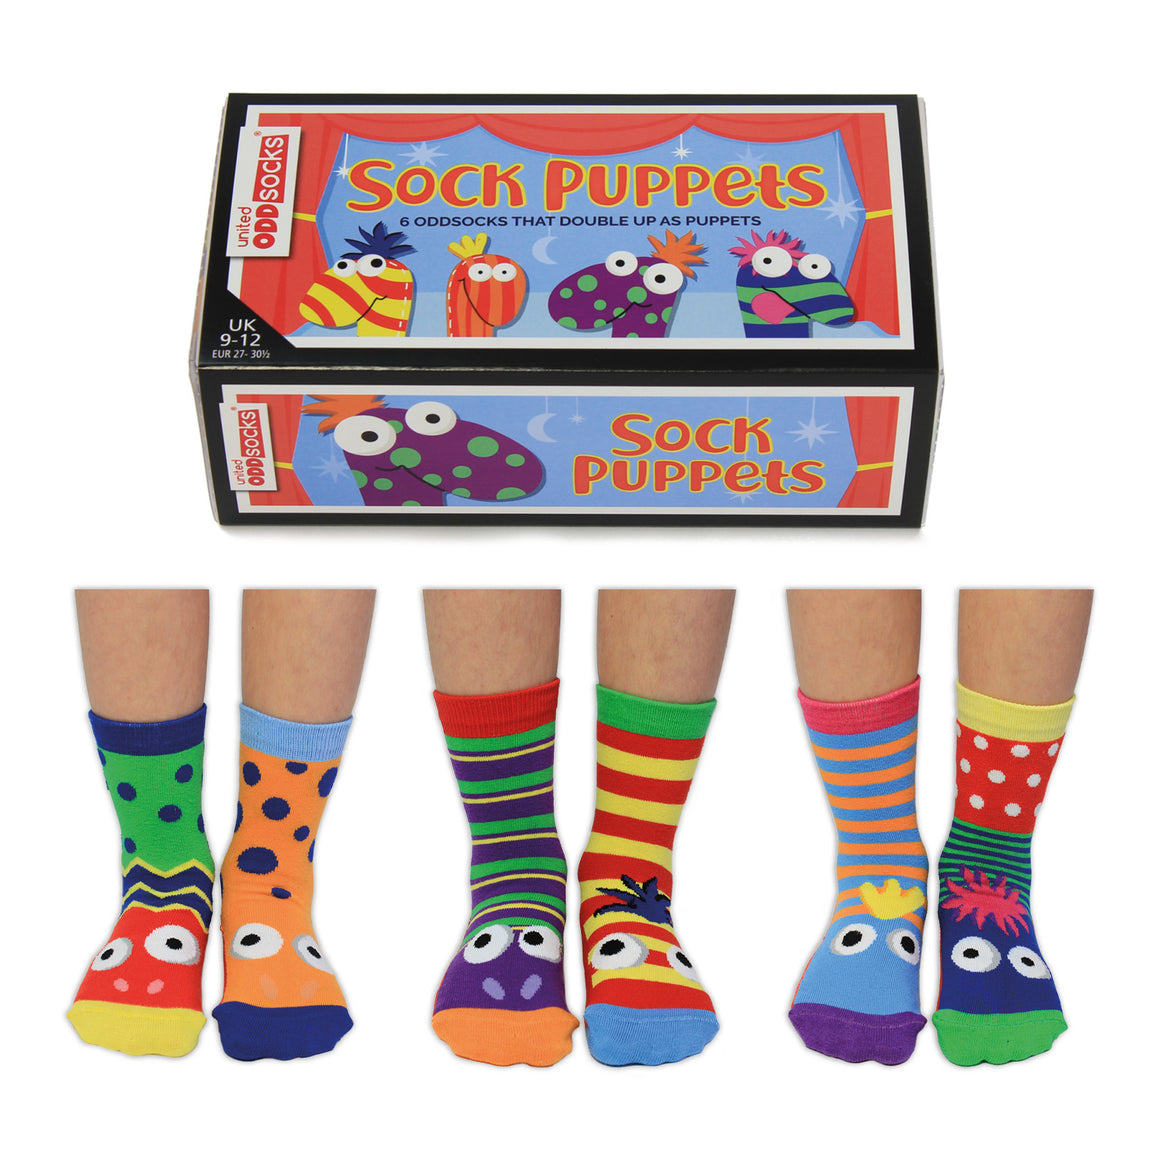 United Odd Socks Sock Puppets Boys Gift Box